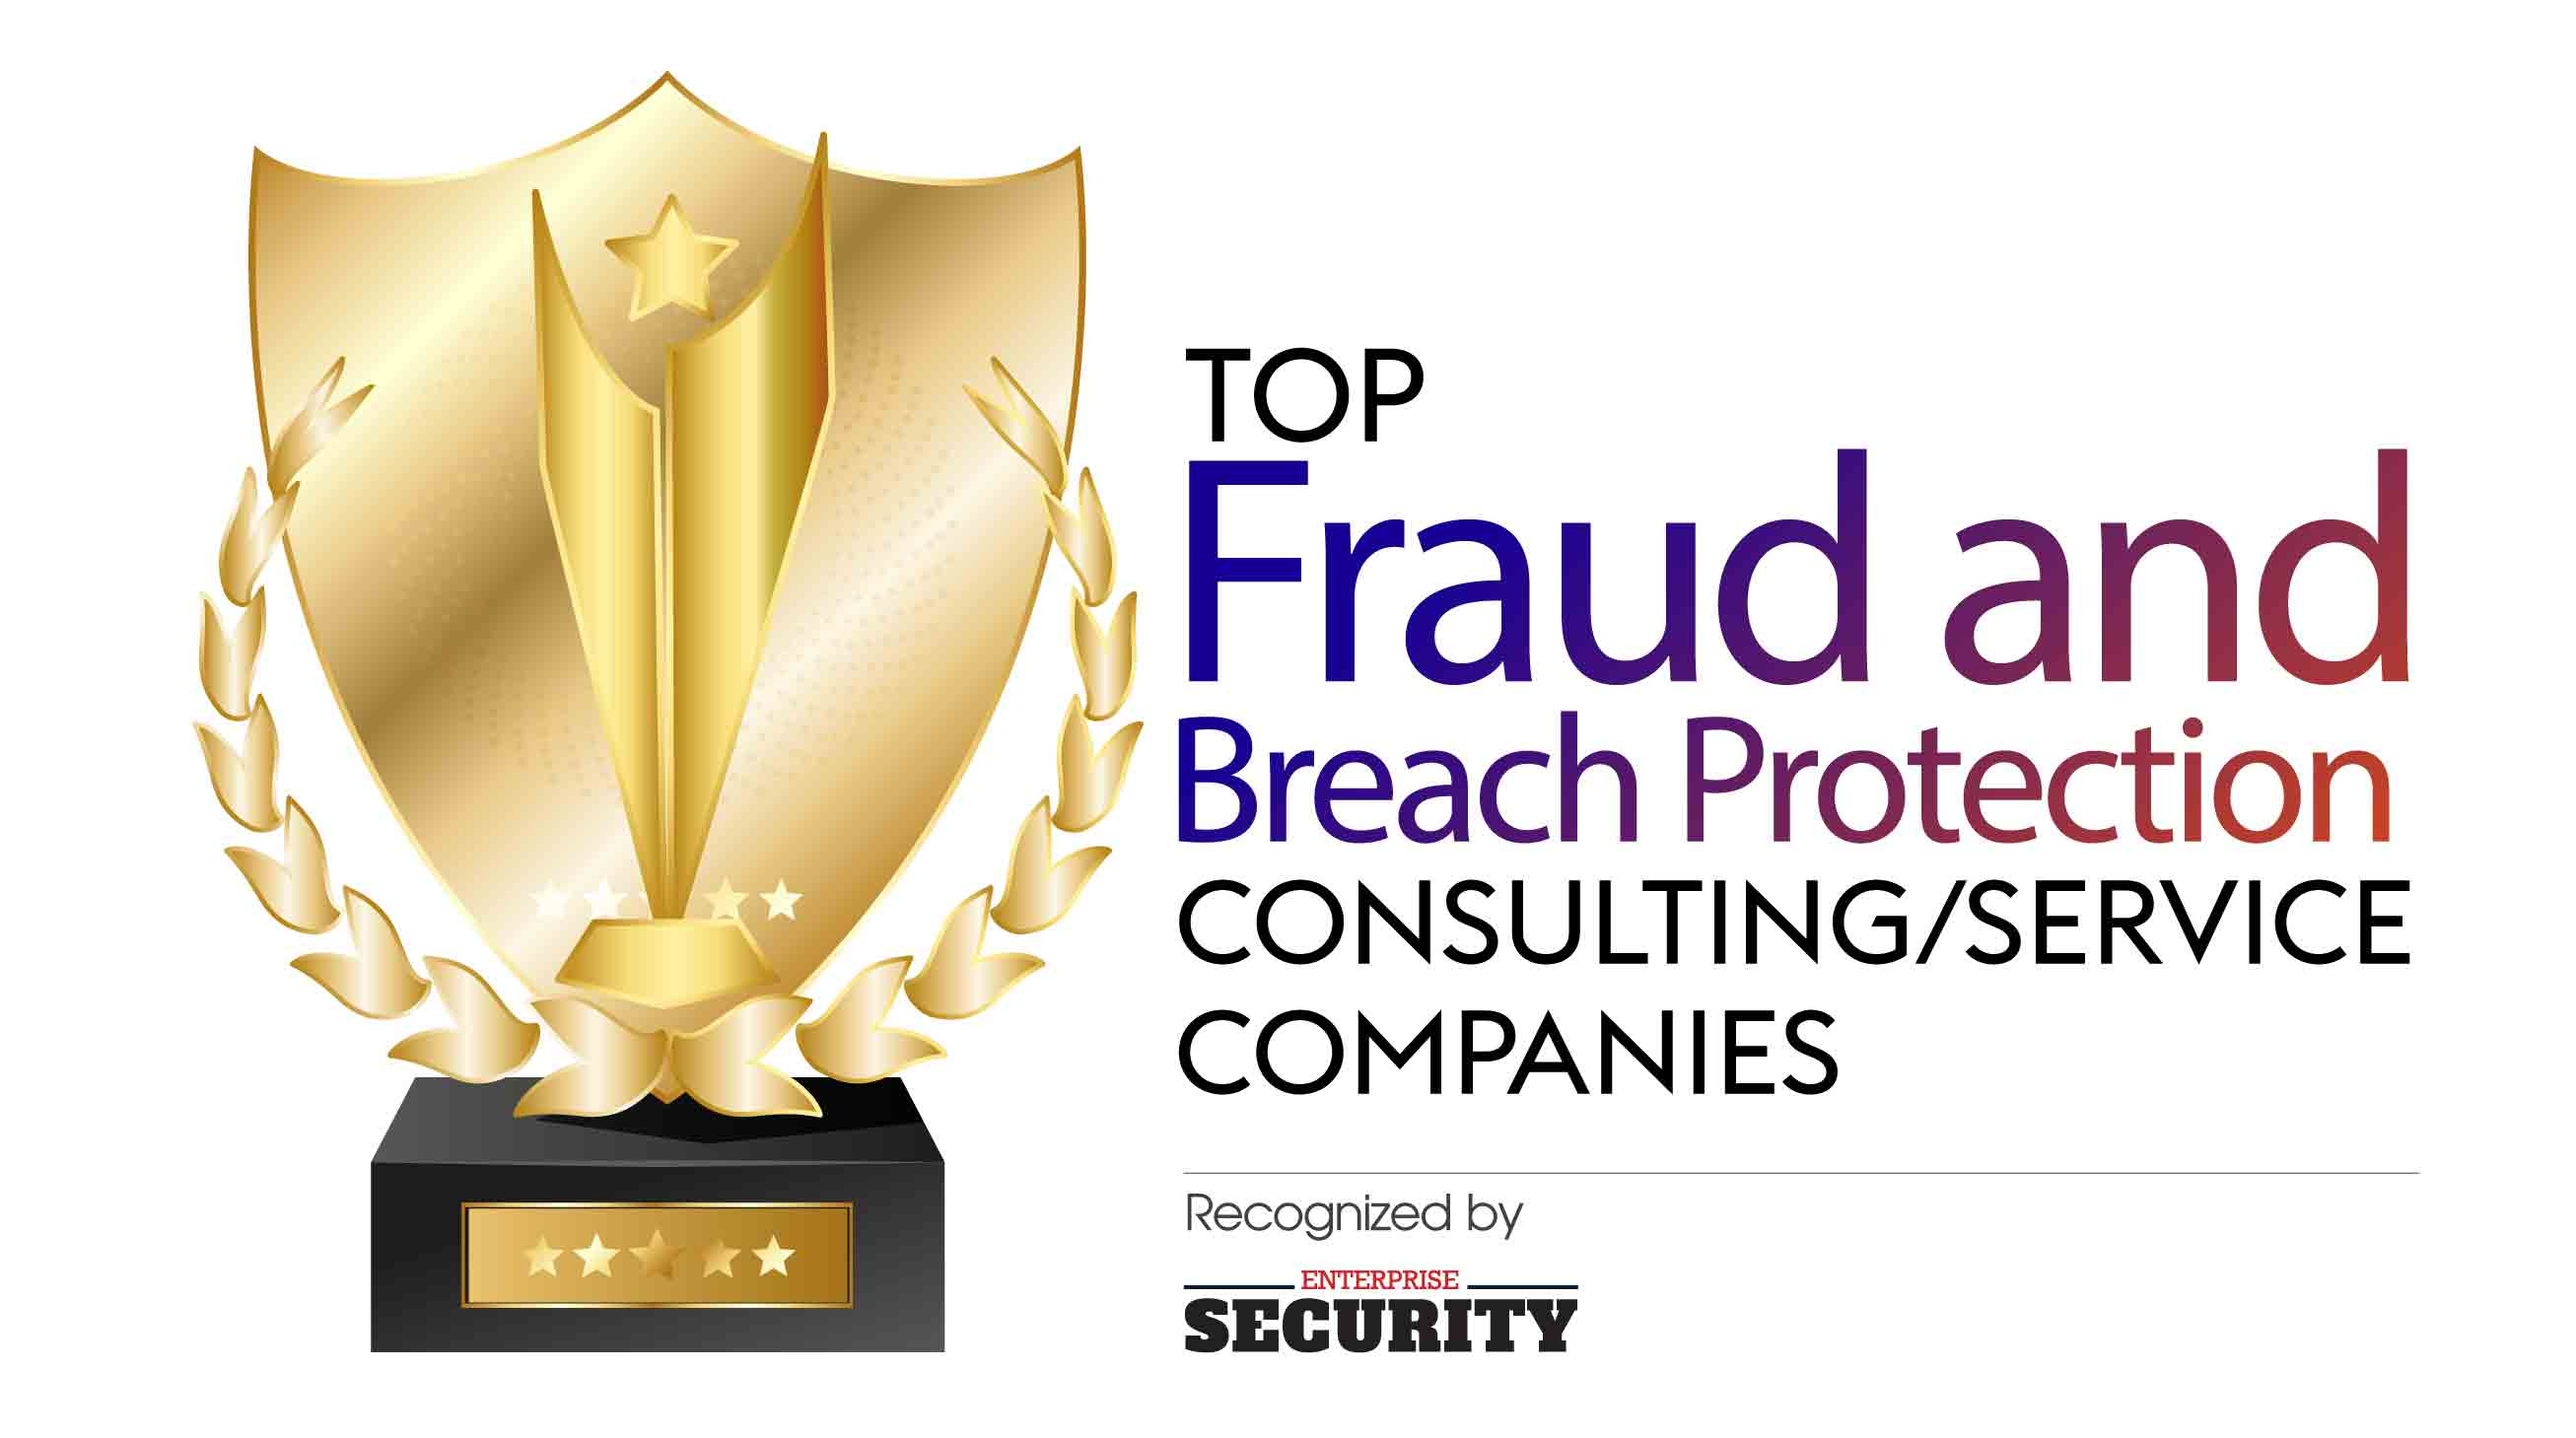 Top Fraud and Breach Protection Consulting/Service Companies